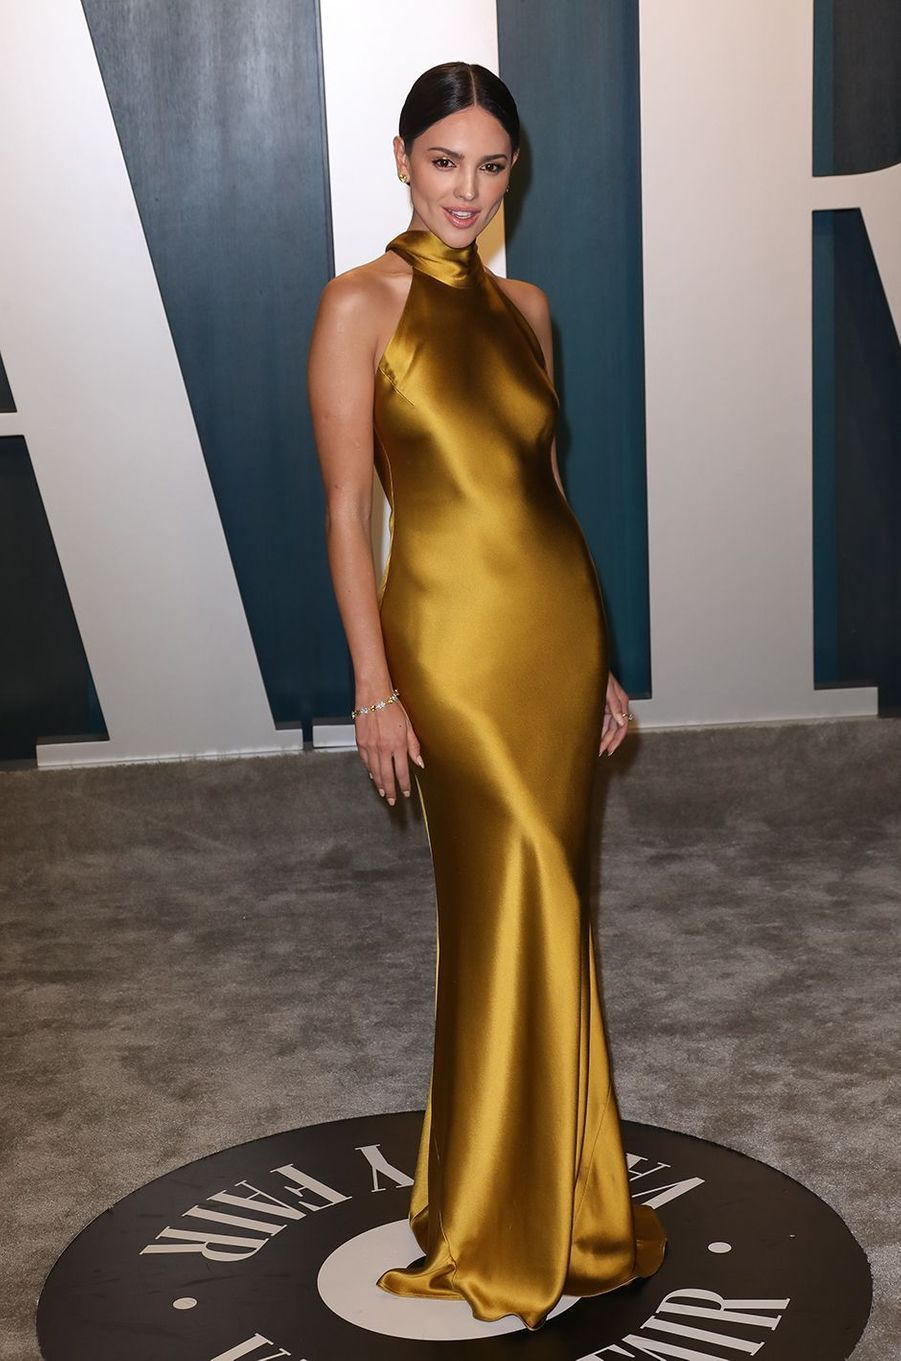 Eiza Gonzalez à l'after-party des Oscars en février 2020